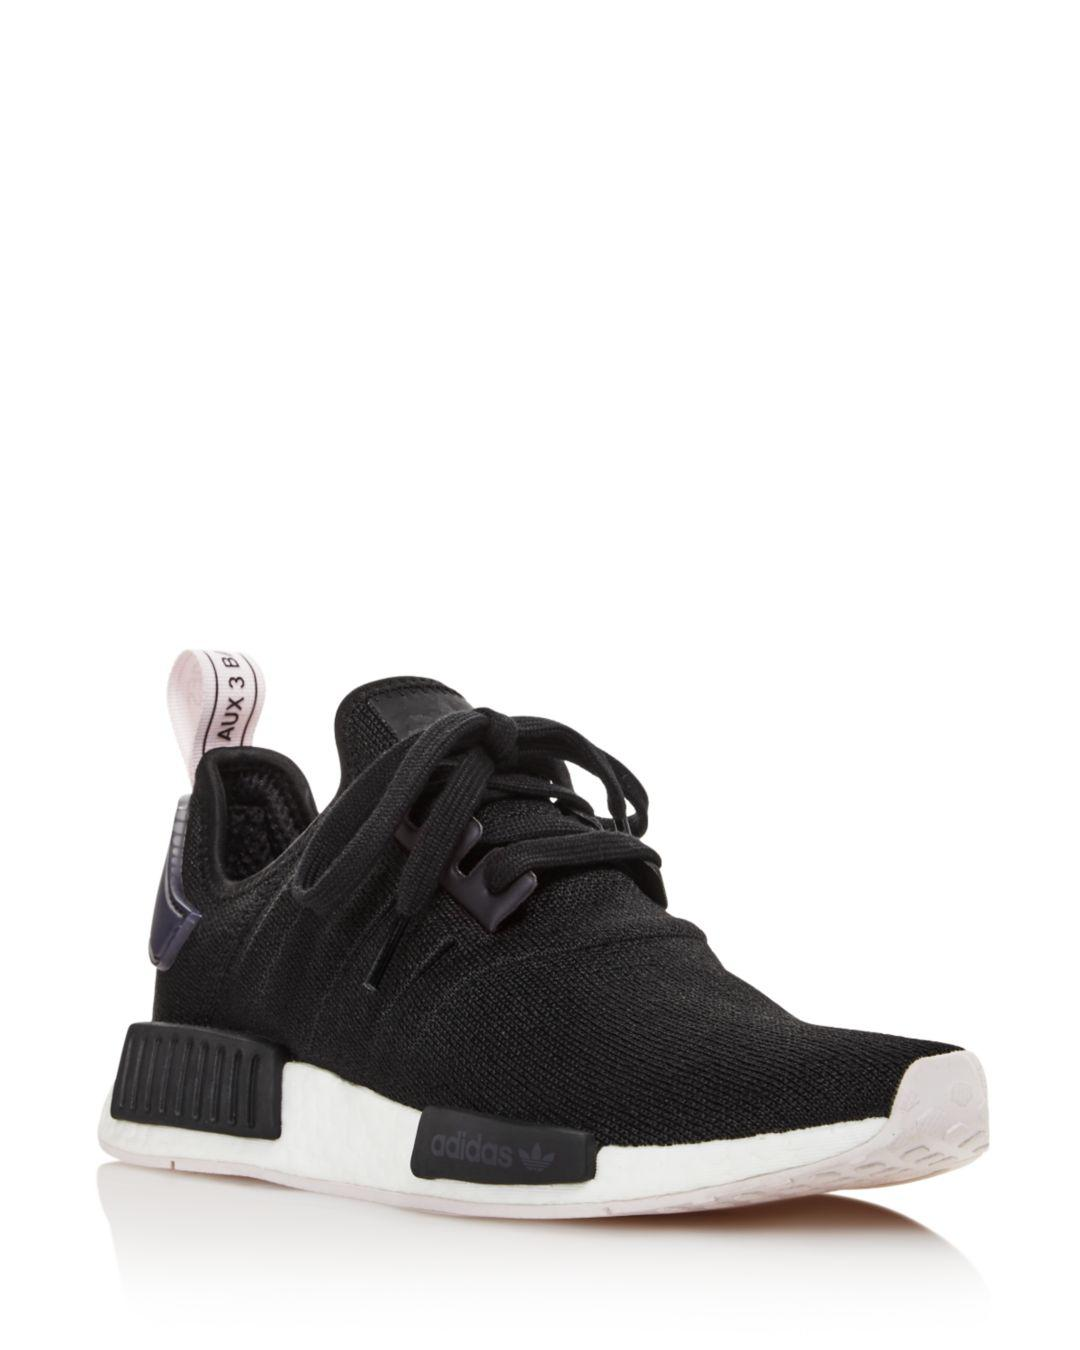 e33b6f209 Lyst - adidas Women s Nmd R1 Knit Lace Up Sneakers in Black